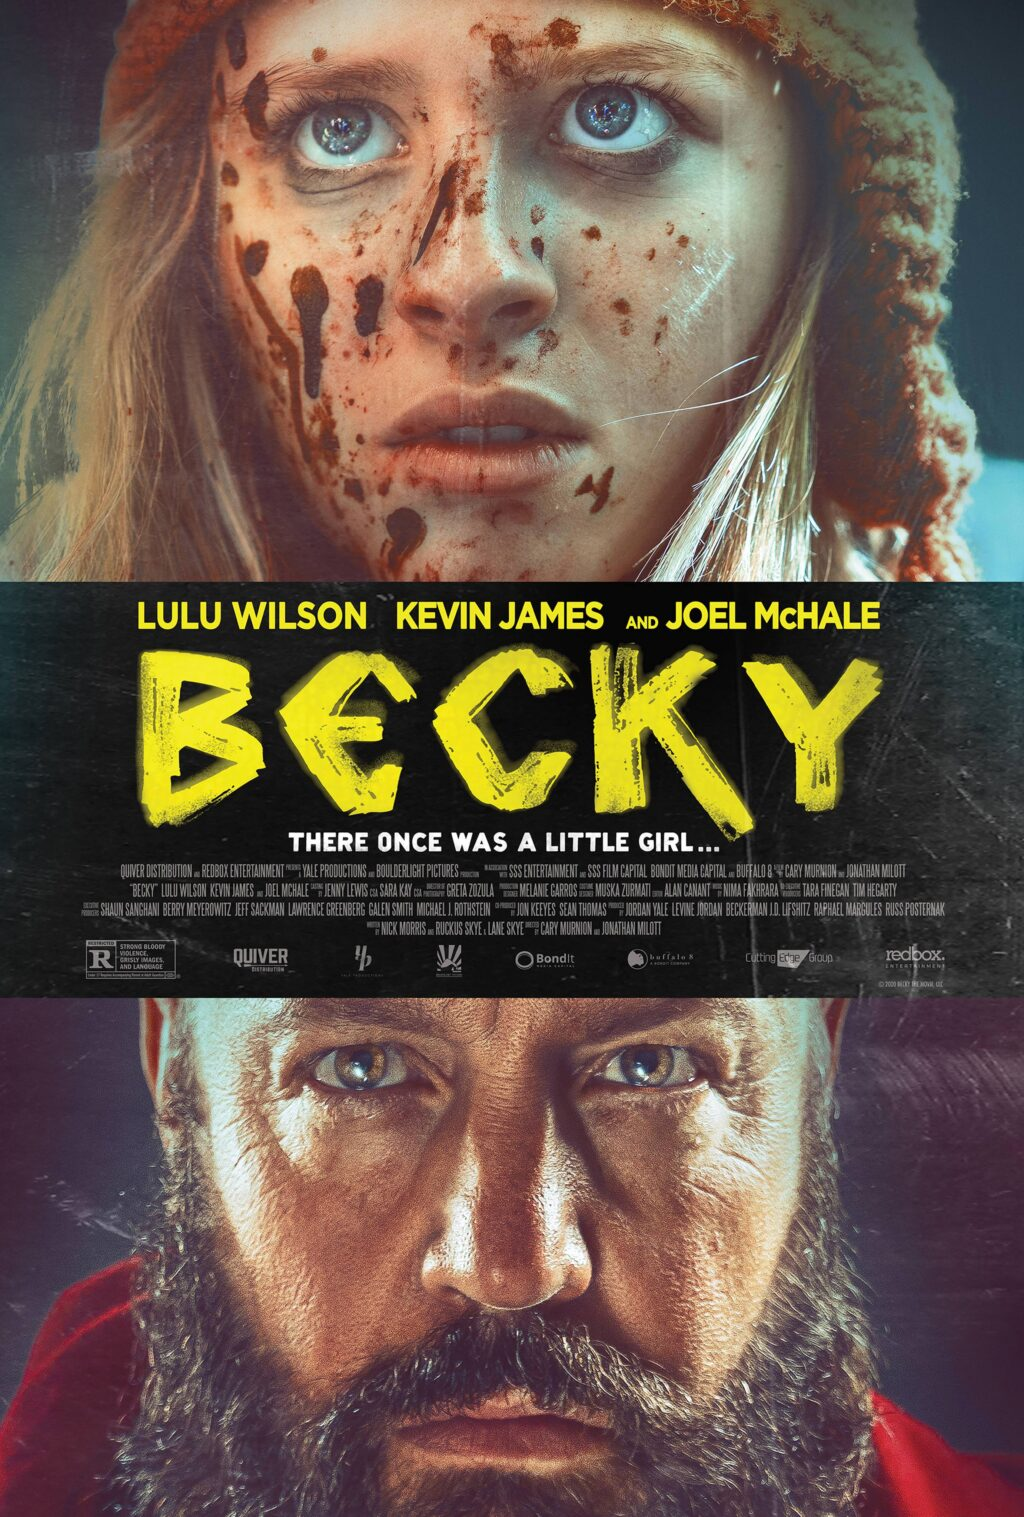 Becky poster DC 1024x1517 - Kevin James Faces Off With Lulu Wilson in Bloody BECKY Poster